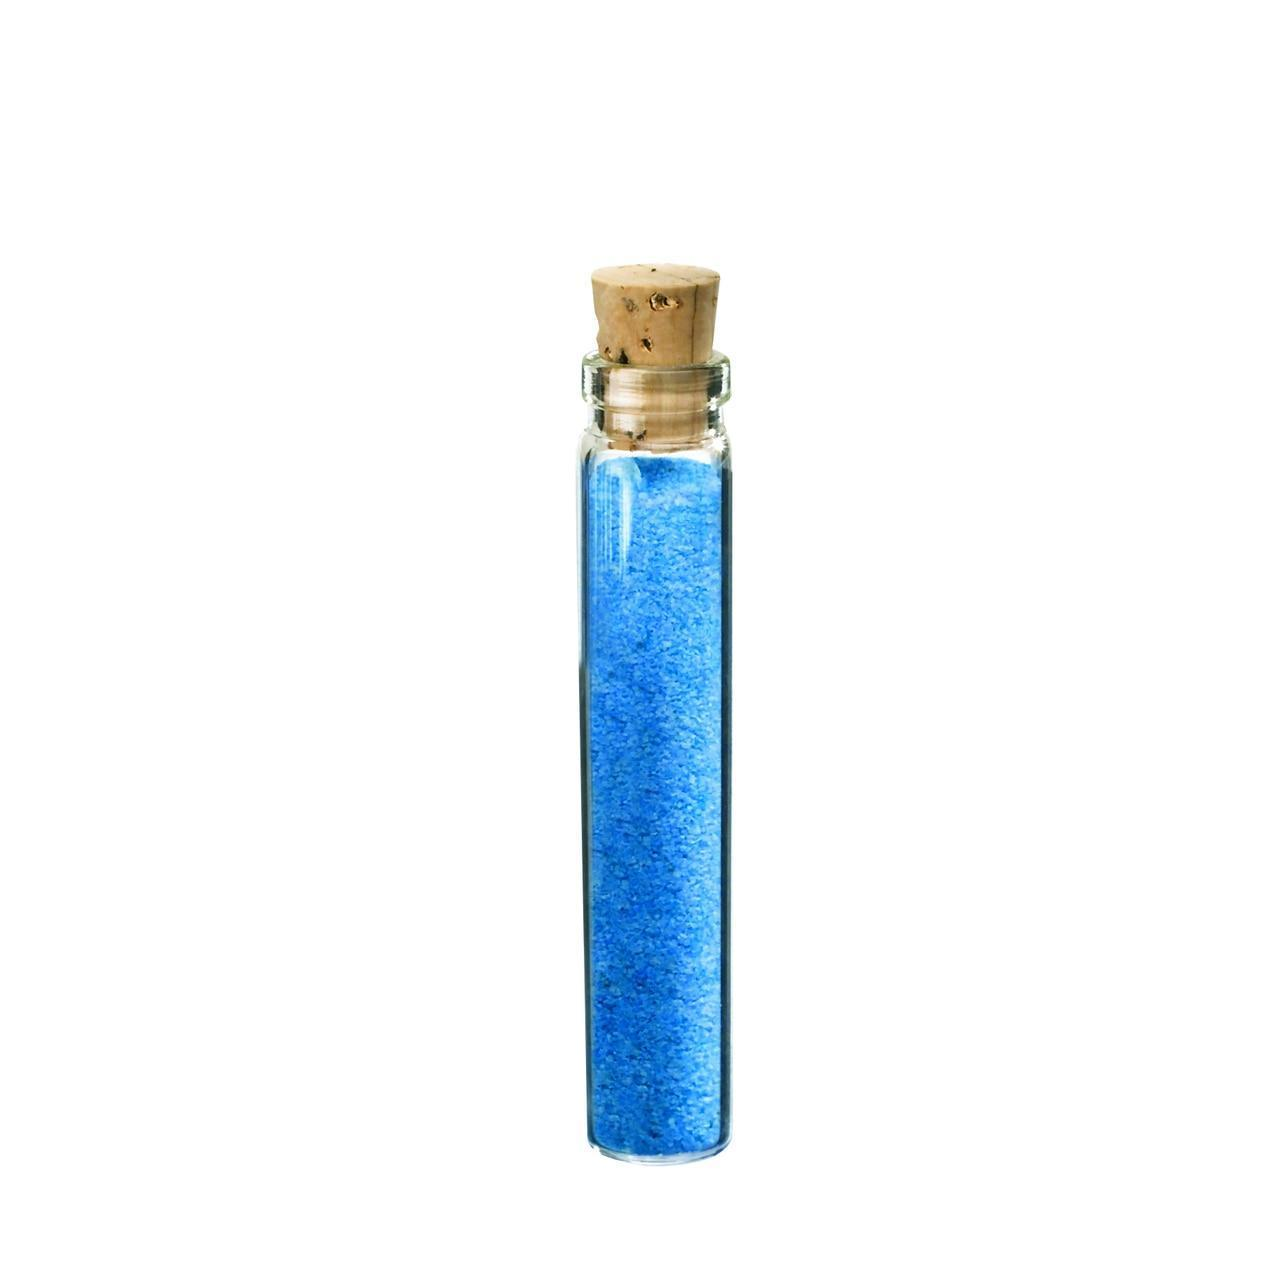 Wholesale Aromatherapy & Essential Oils Containers Glass Corked Vials v4510B01 from china suppliers